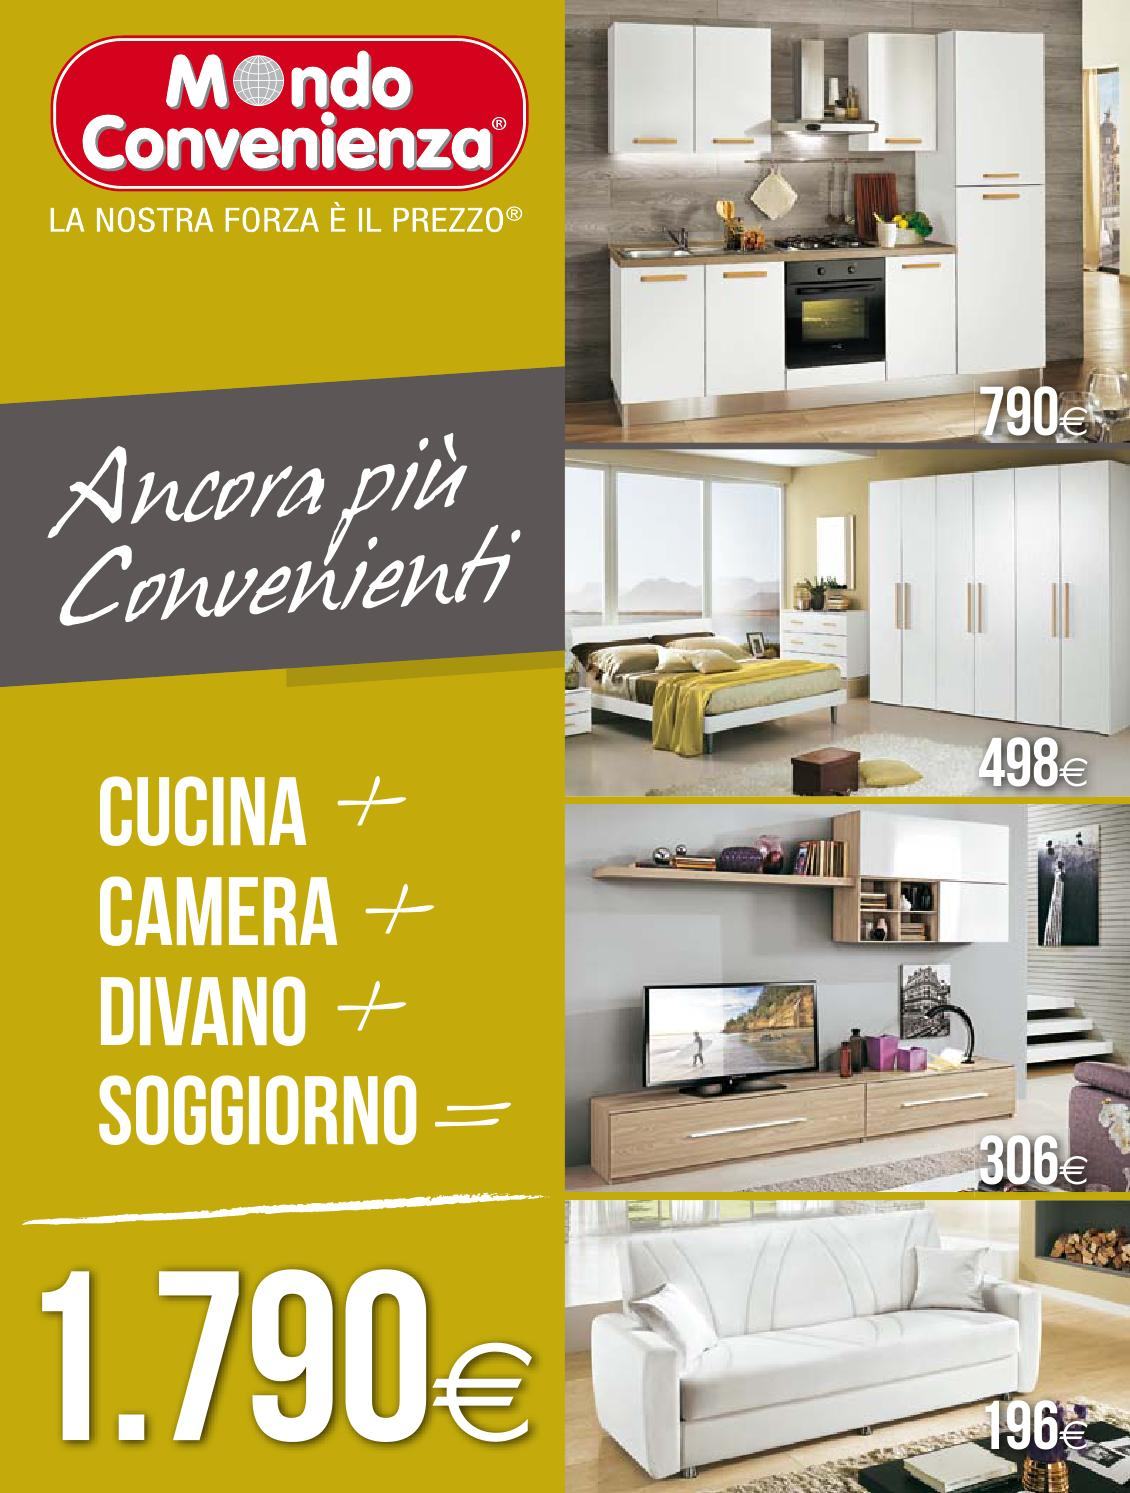 Mondo convenienza catalogo autunno2014 by mobilpro issuu for Volantino mondo convenienza divani